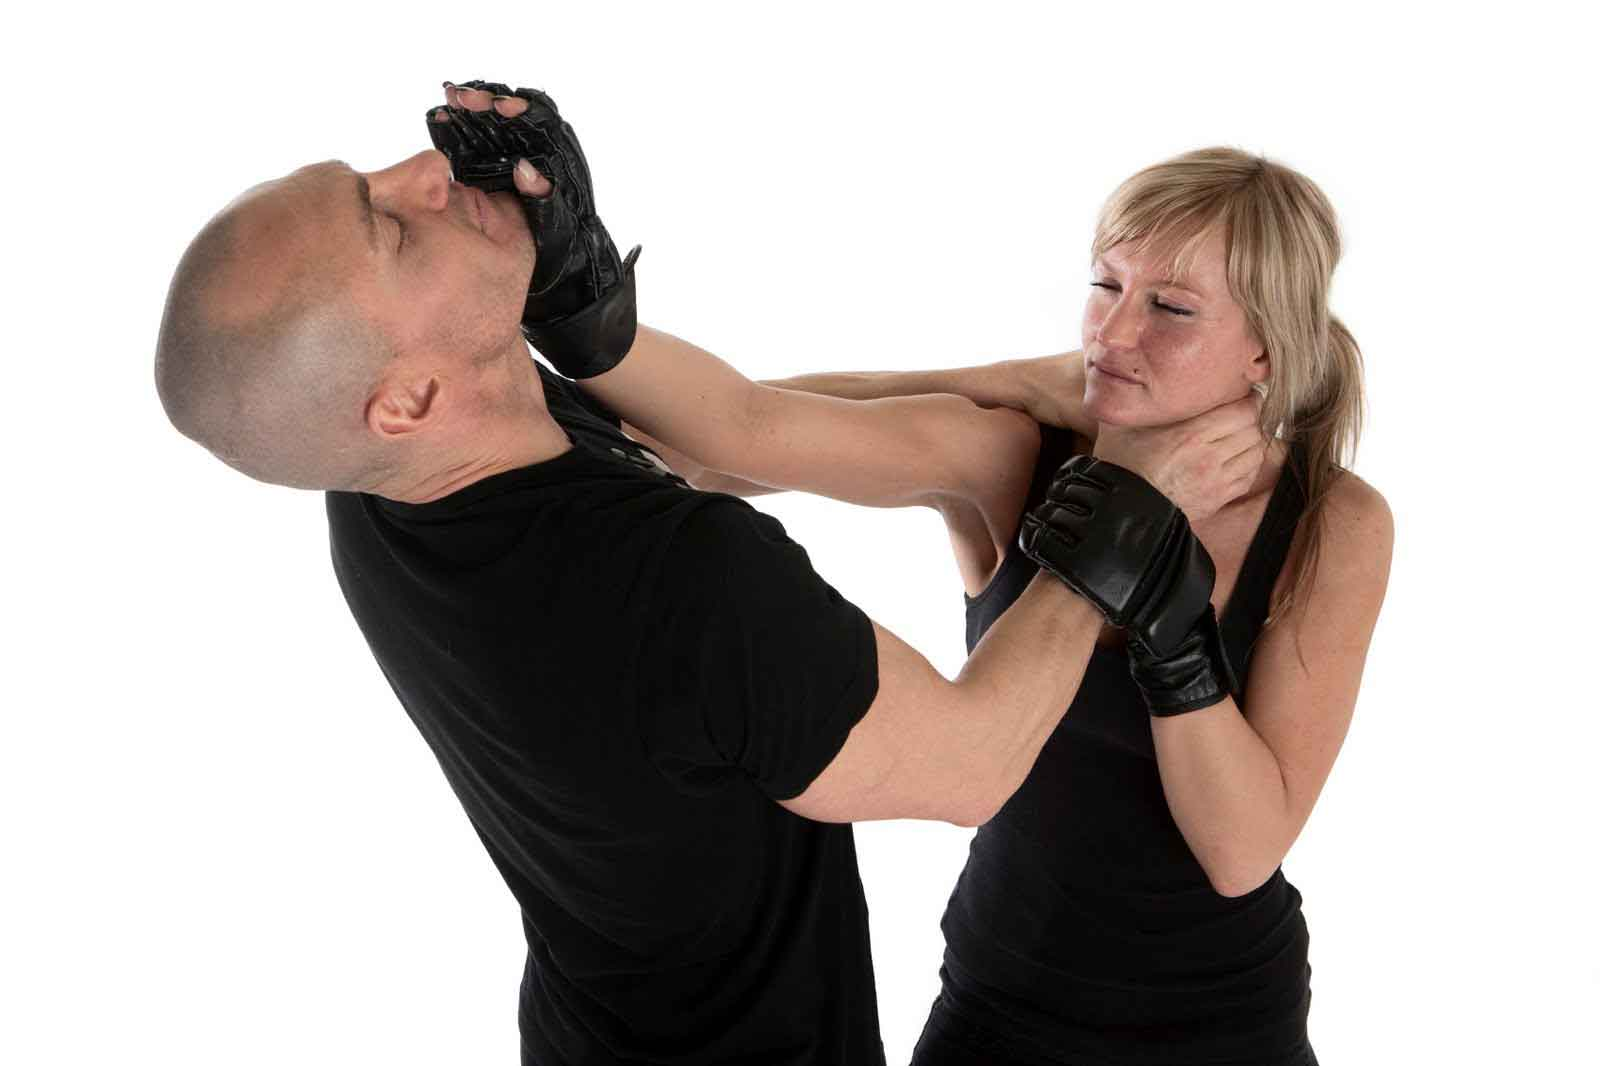 SELF DEFENSE: Learn How to Fight Back- Protect Yourself & Family